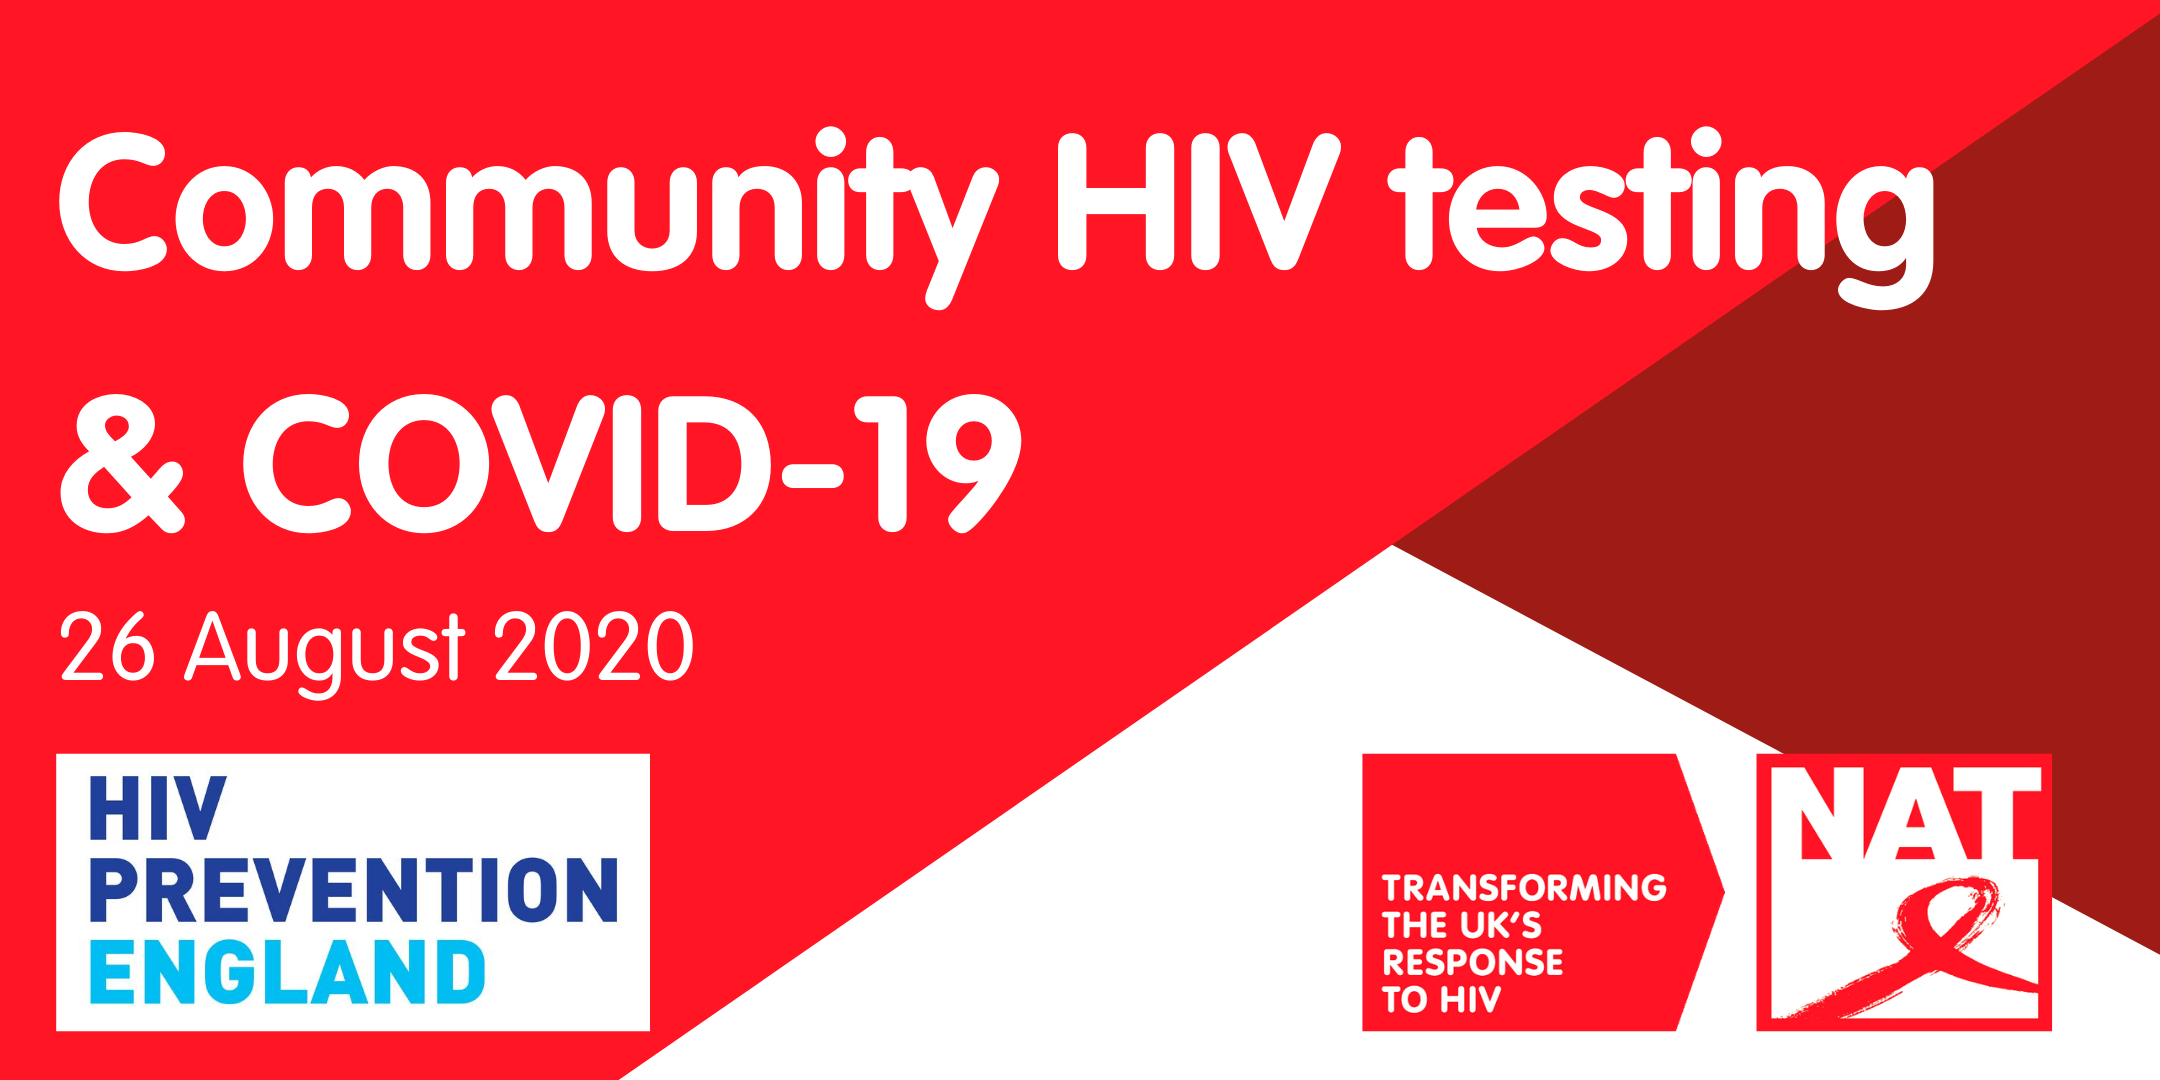 Community HIV testing and COVID-19